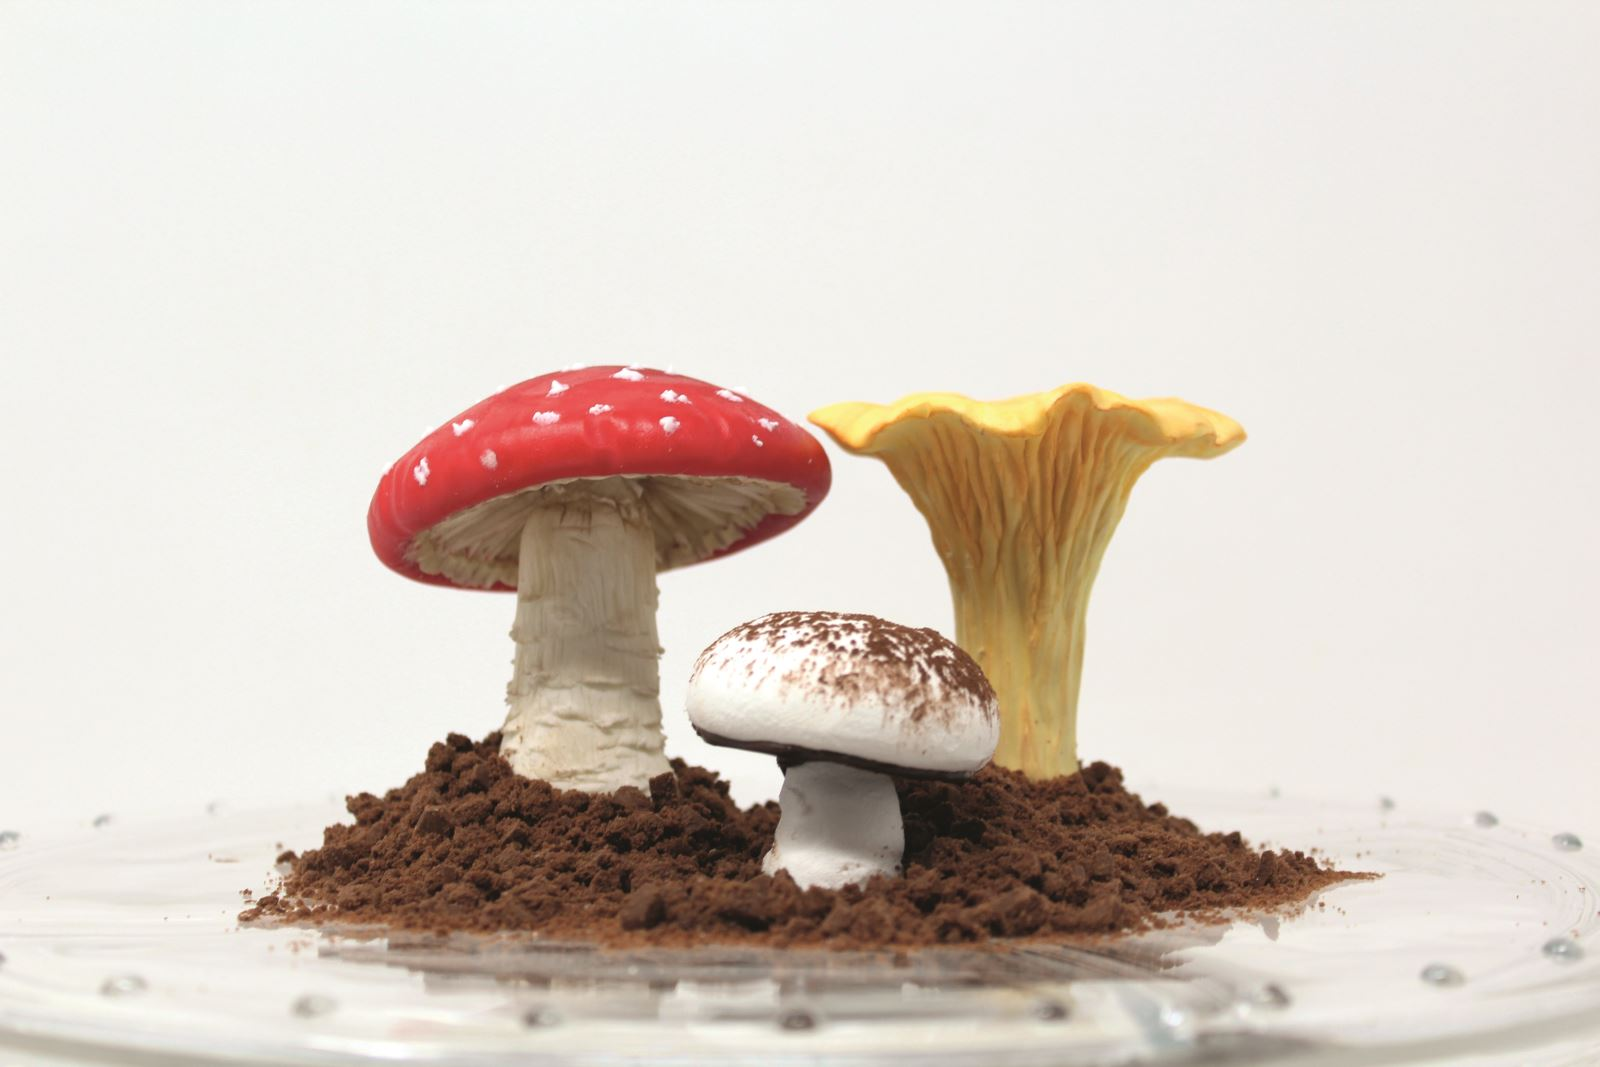 HOW TO DISPLAY THE MUSHROOMS